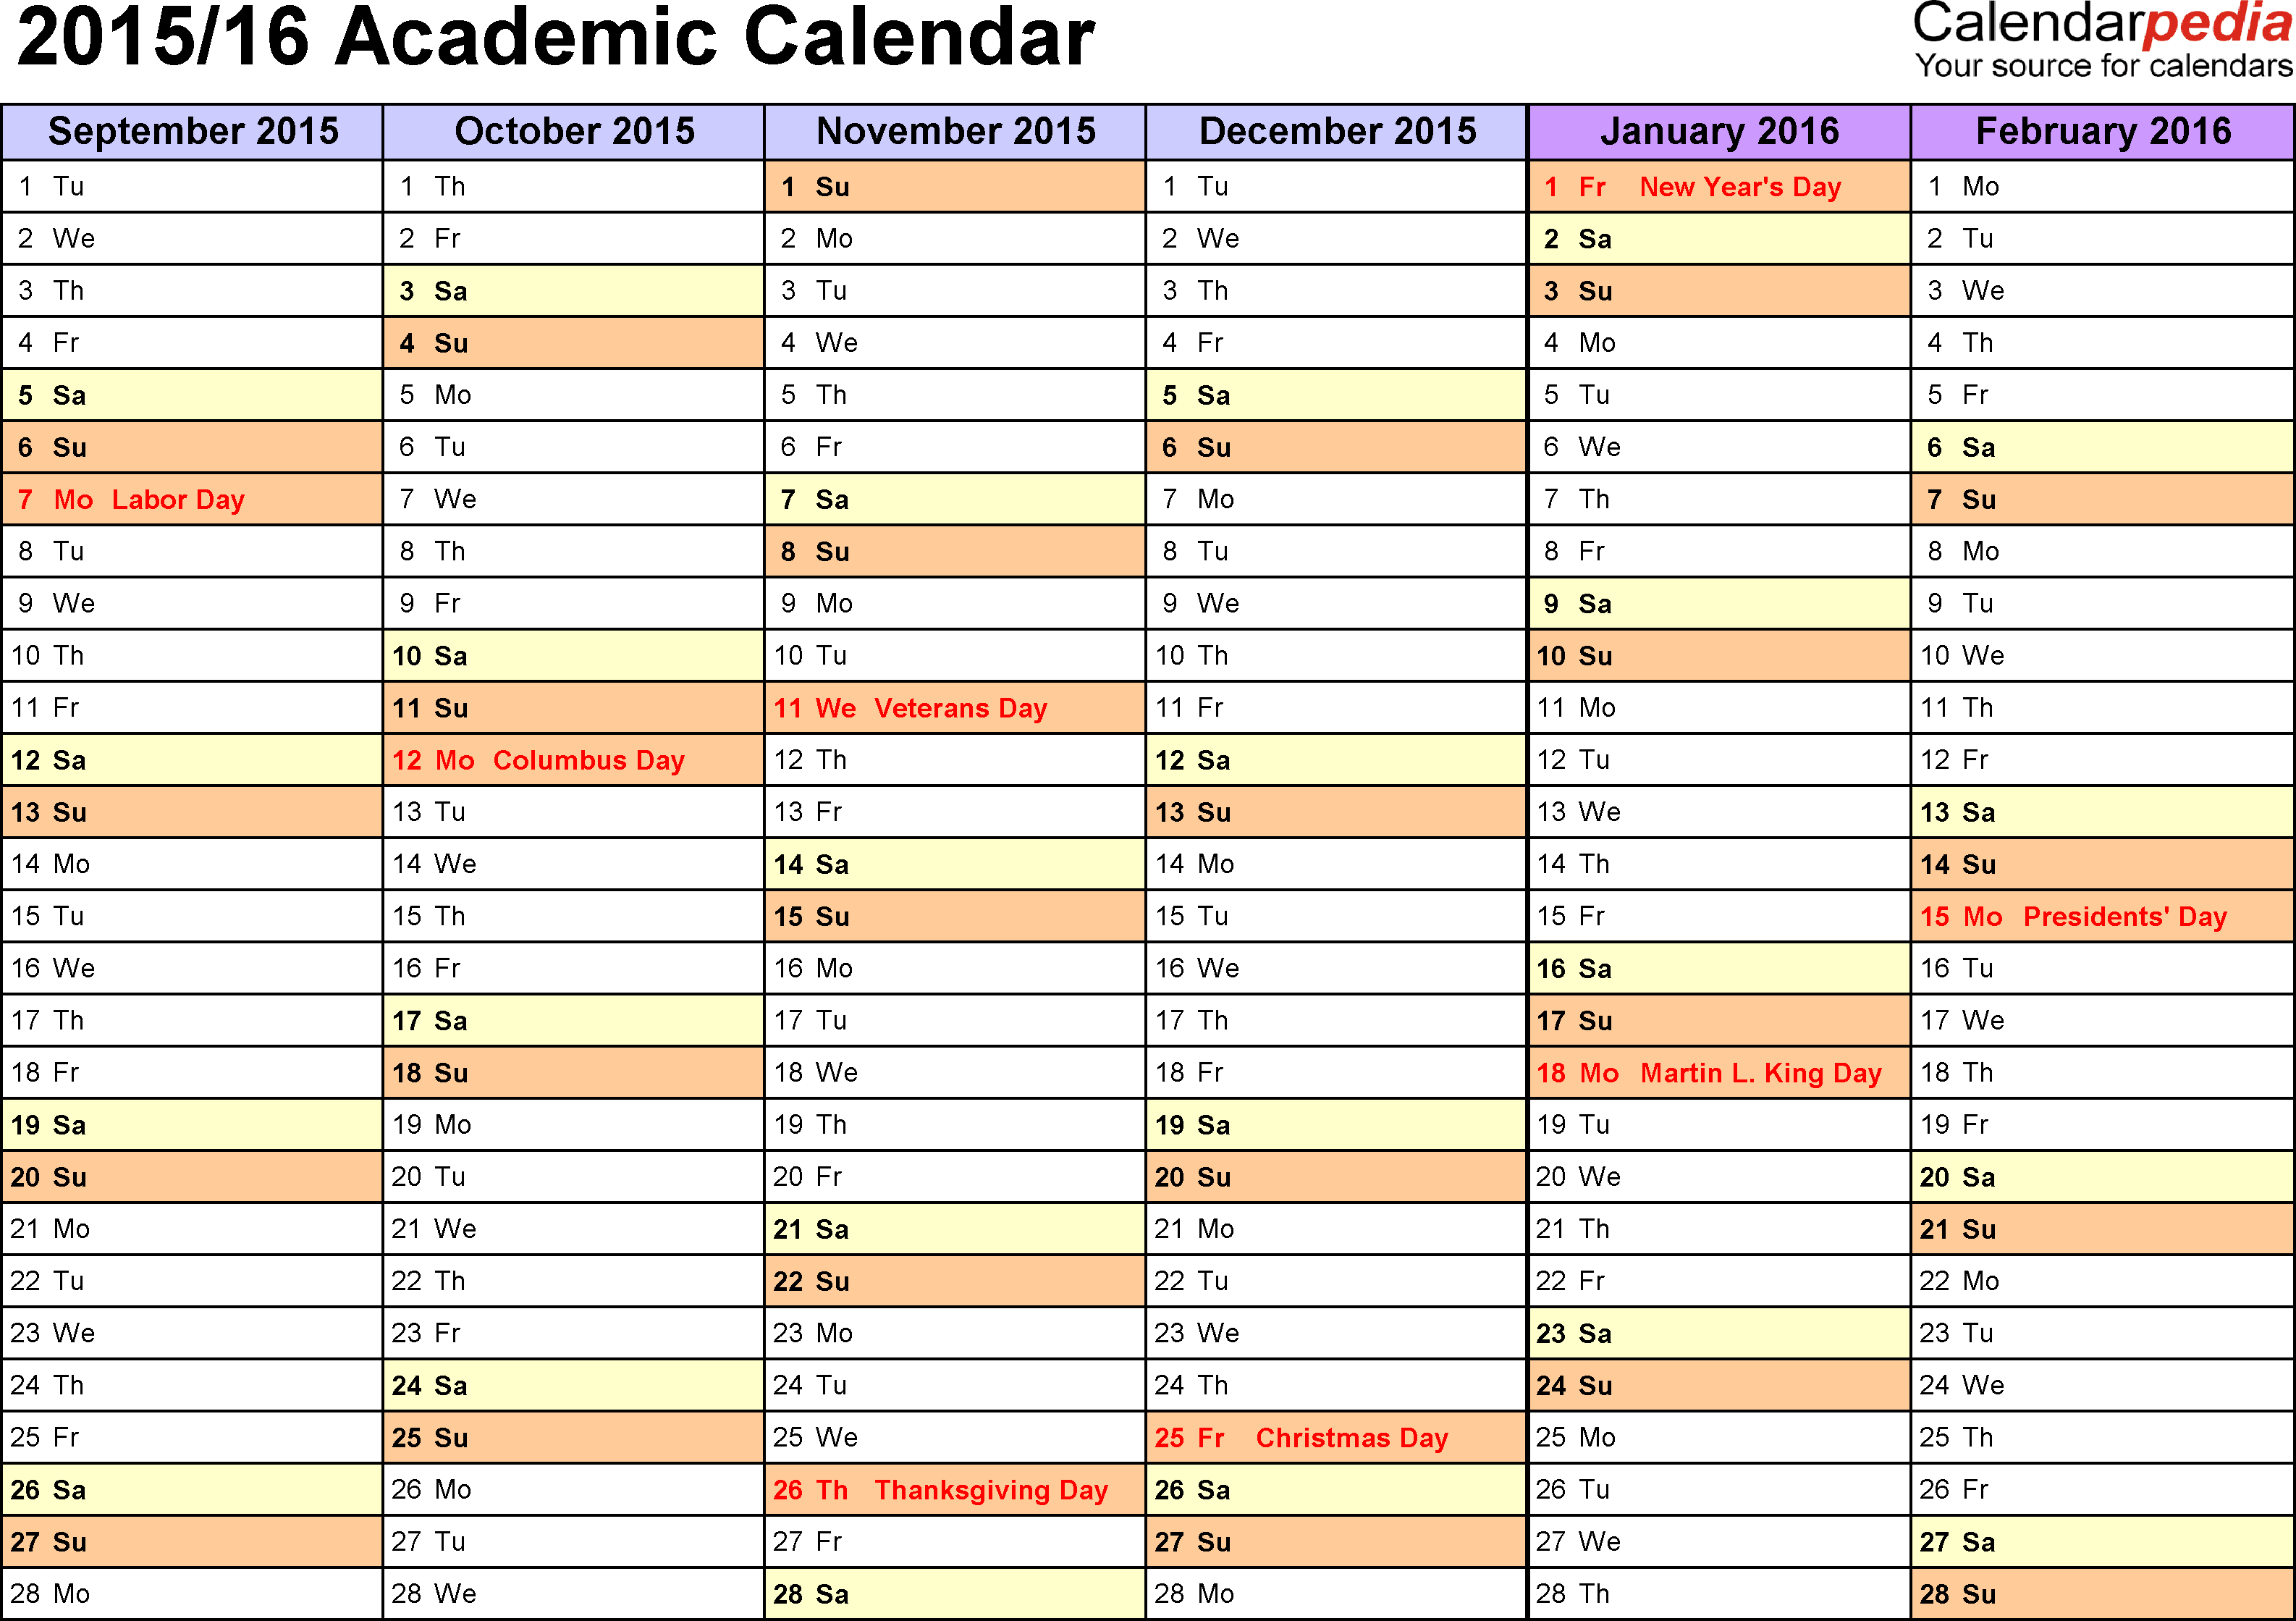 Template 2: Academic calendar 2015/16, in PDF format, landscape, 2 pages, half a year per page